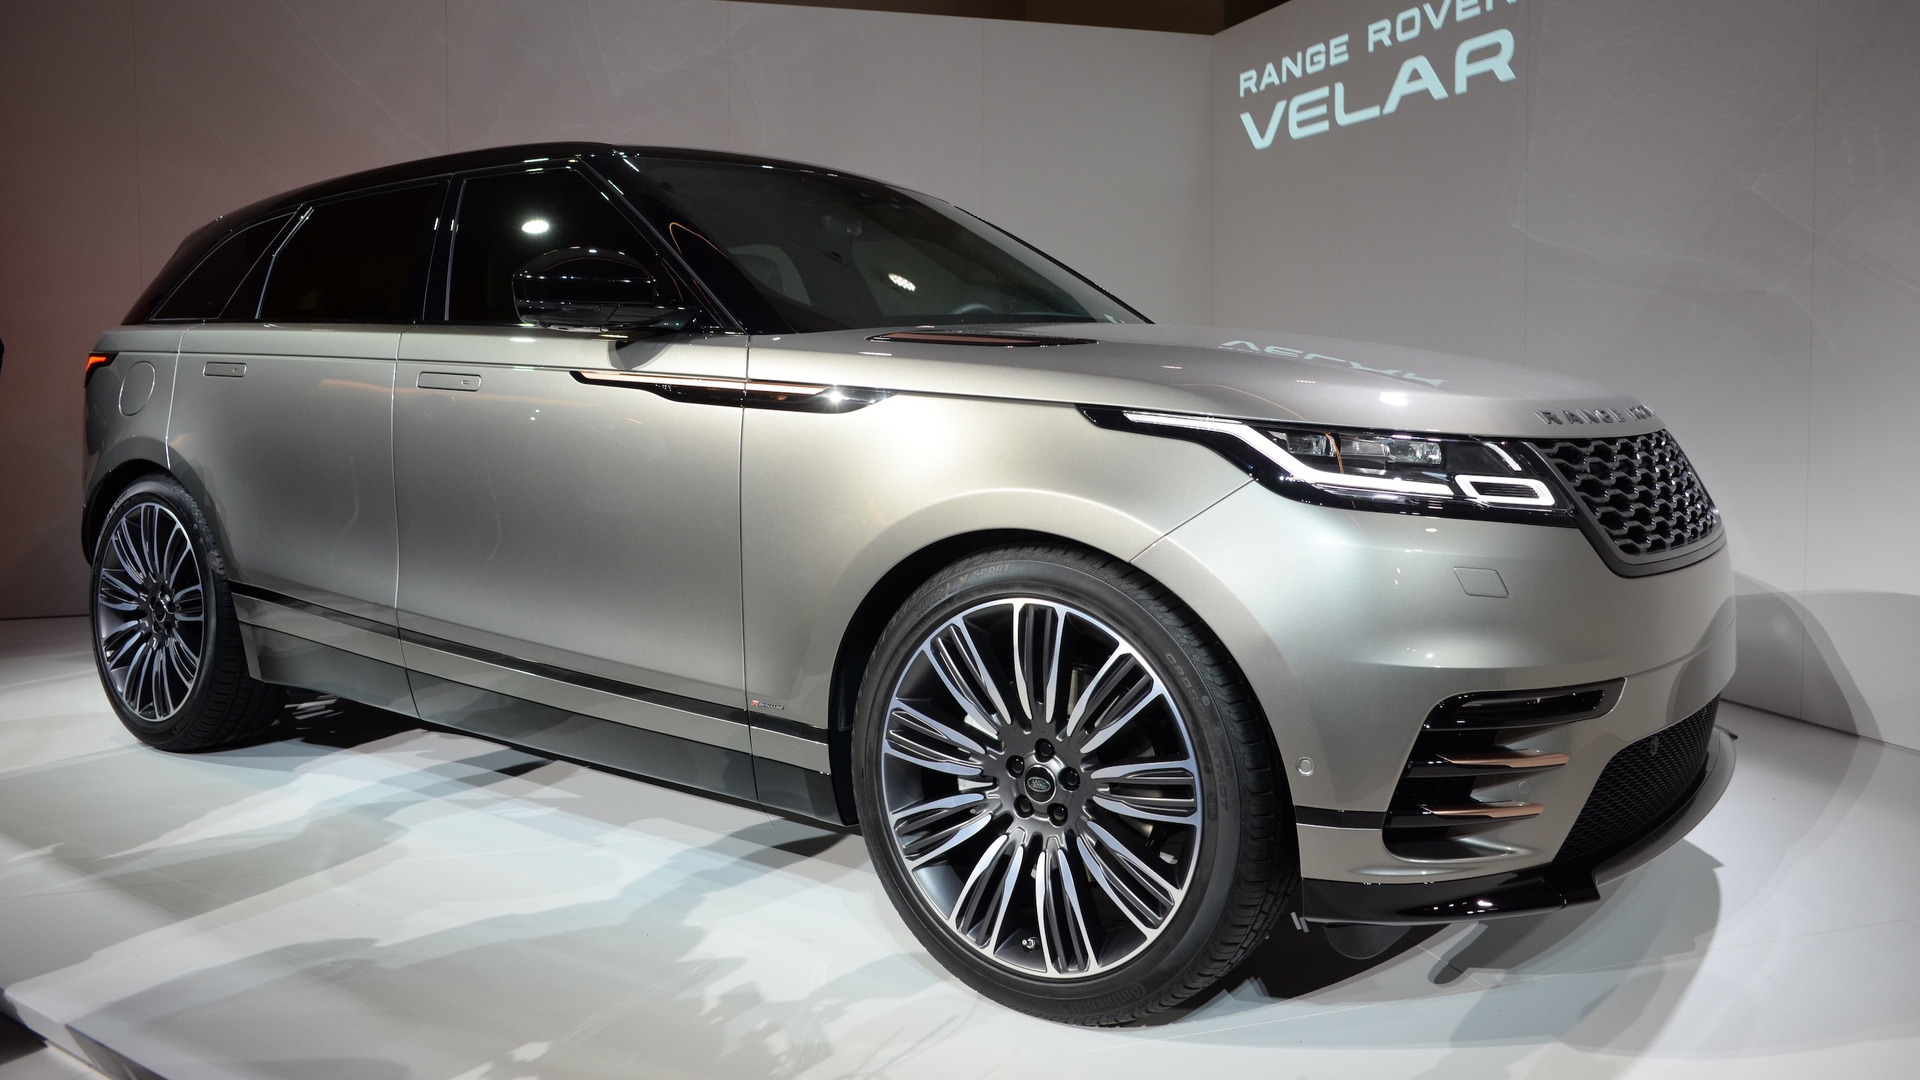 Range Rover Velar Coupe Suv Arrives This Summer Starts At 62 000